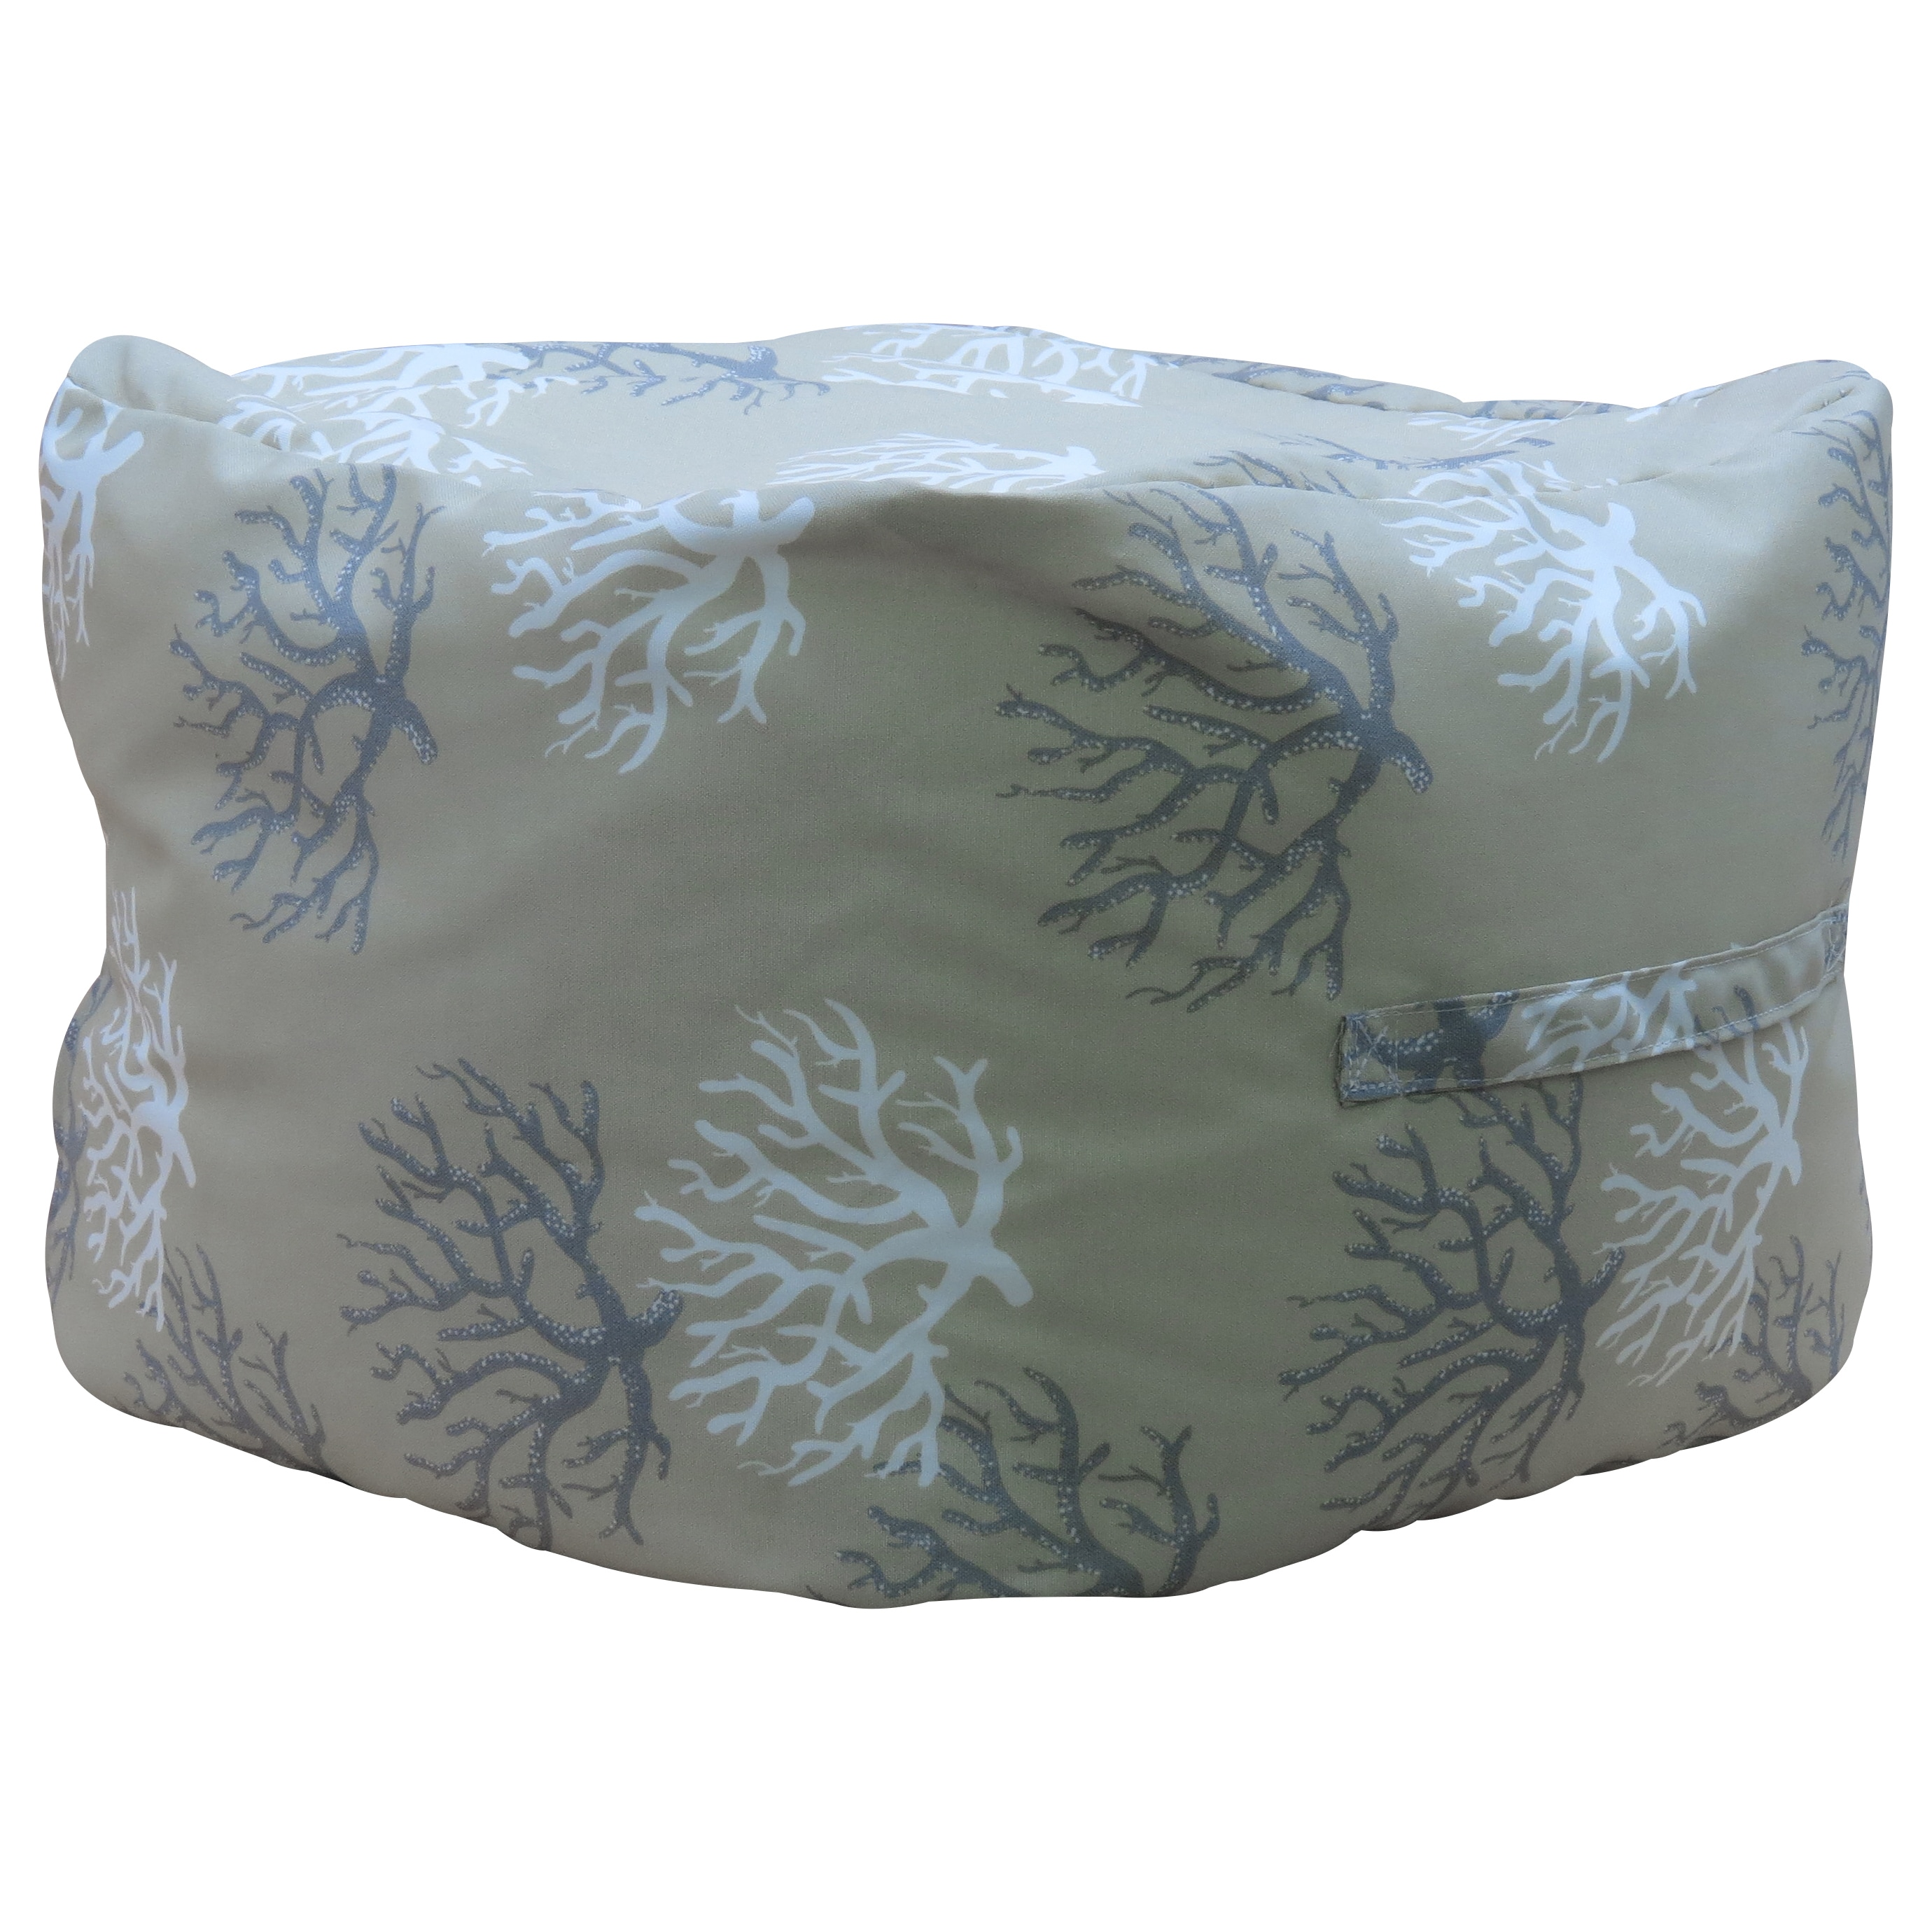 "Premiere Home Isadella Sand 17"" Pouf Footstool (Pouf), Gr..."